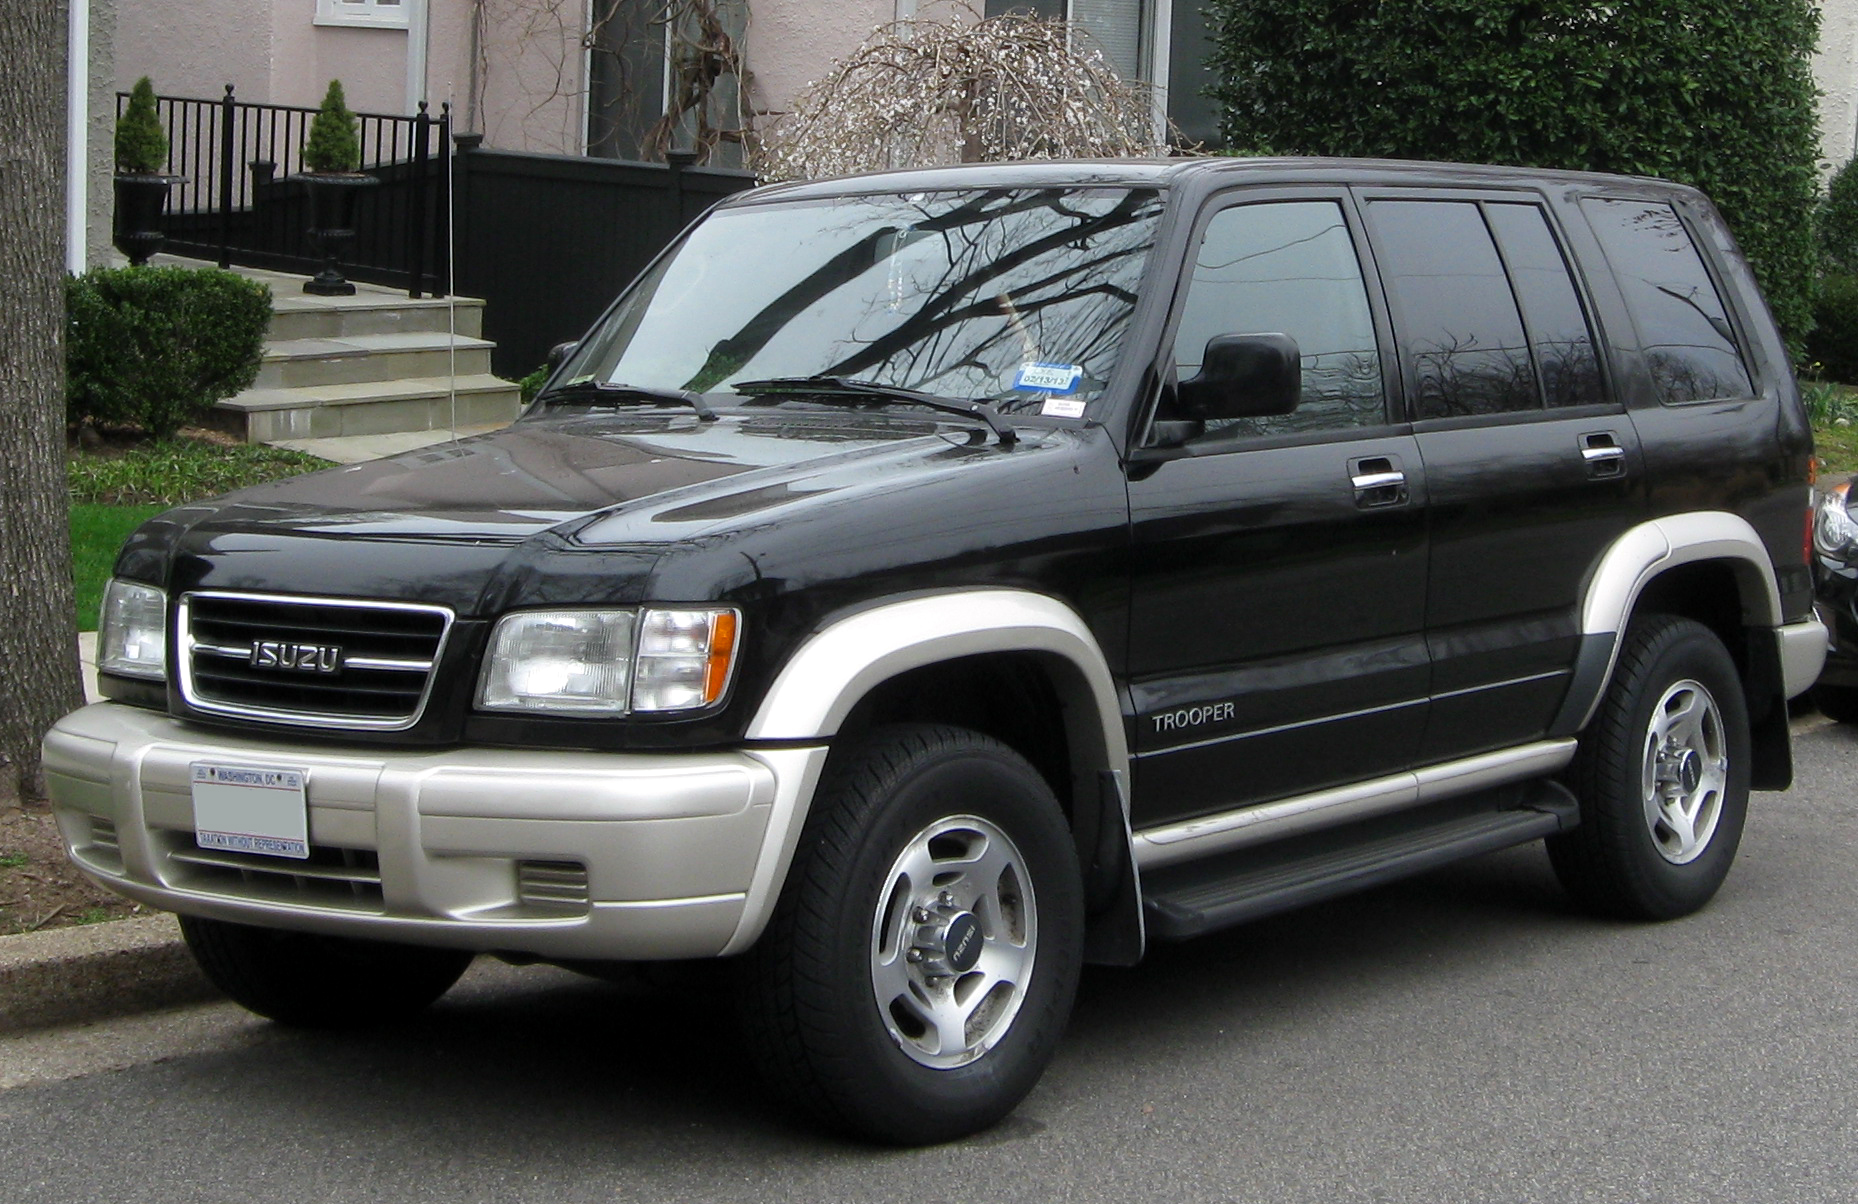 Isuzu Trooper Wikipedia